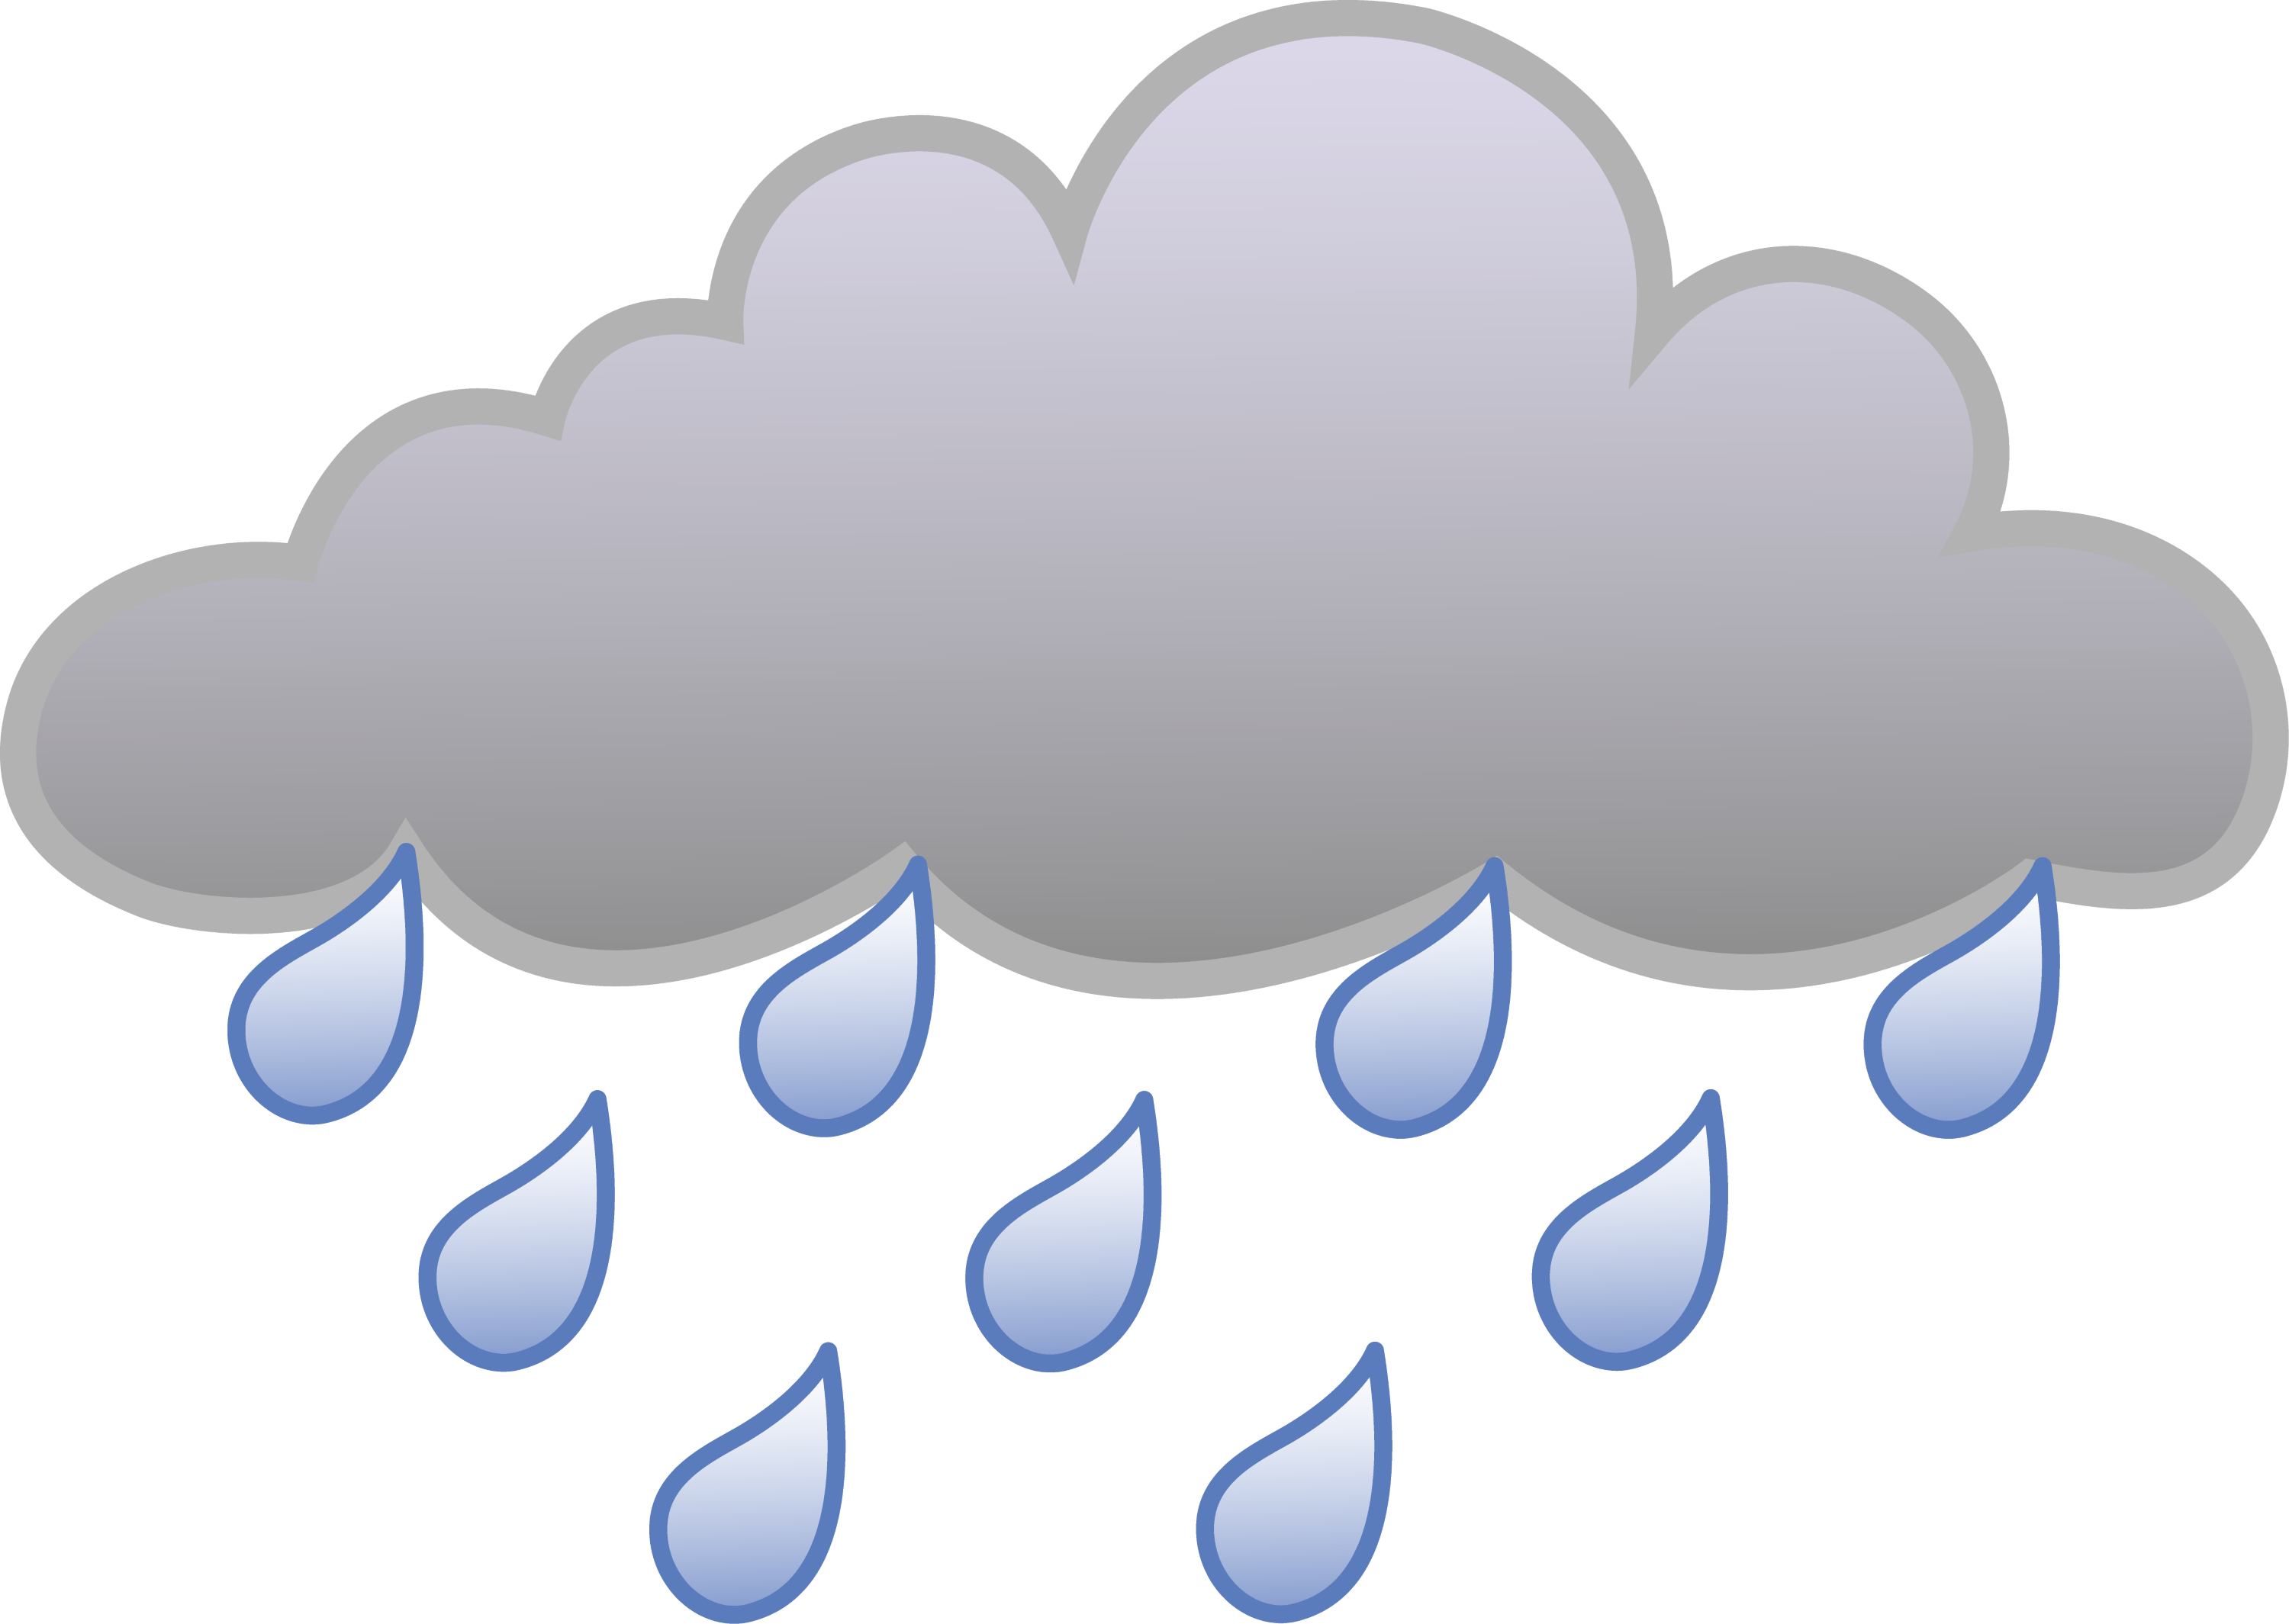 Rain cloud weather symbol